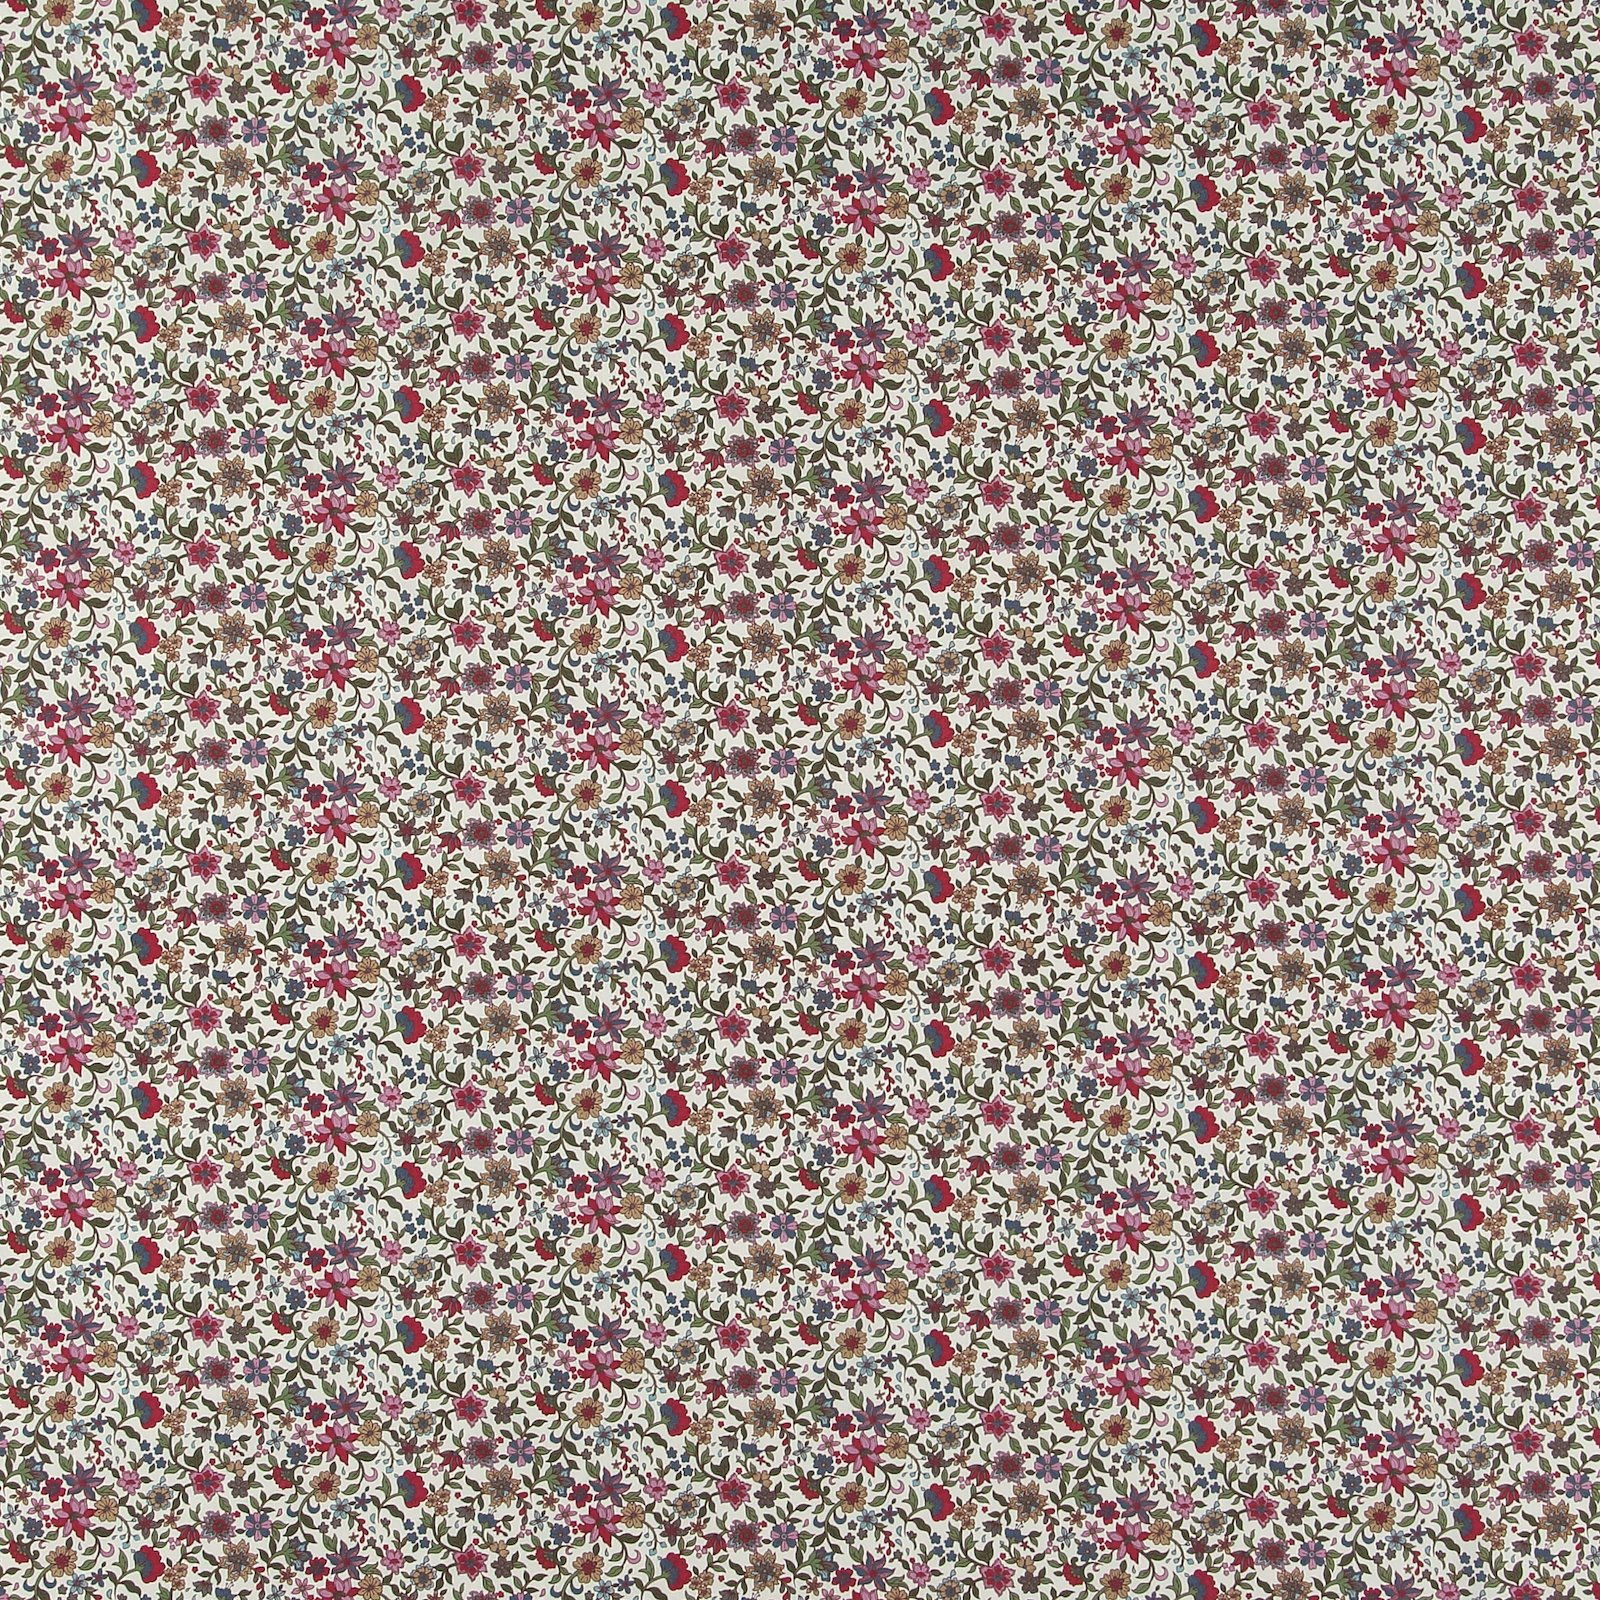 Cotton pastel powder with flowers 852402_pack_sp